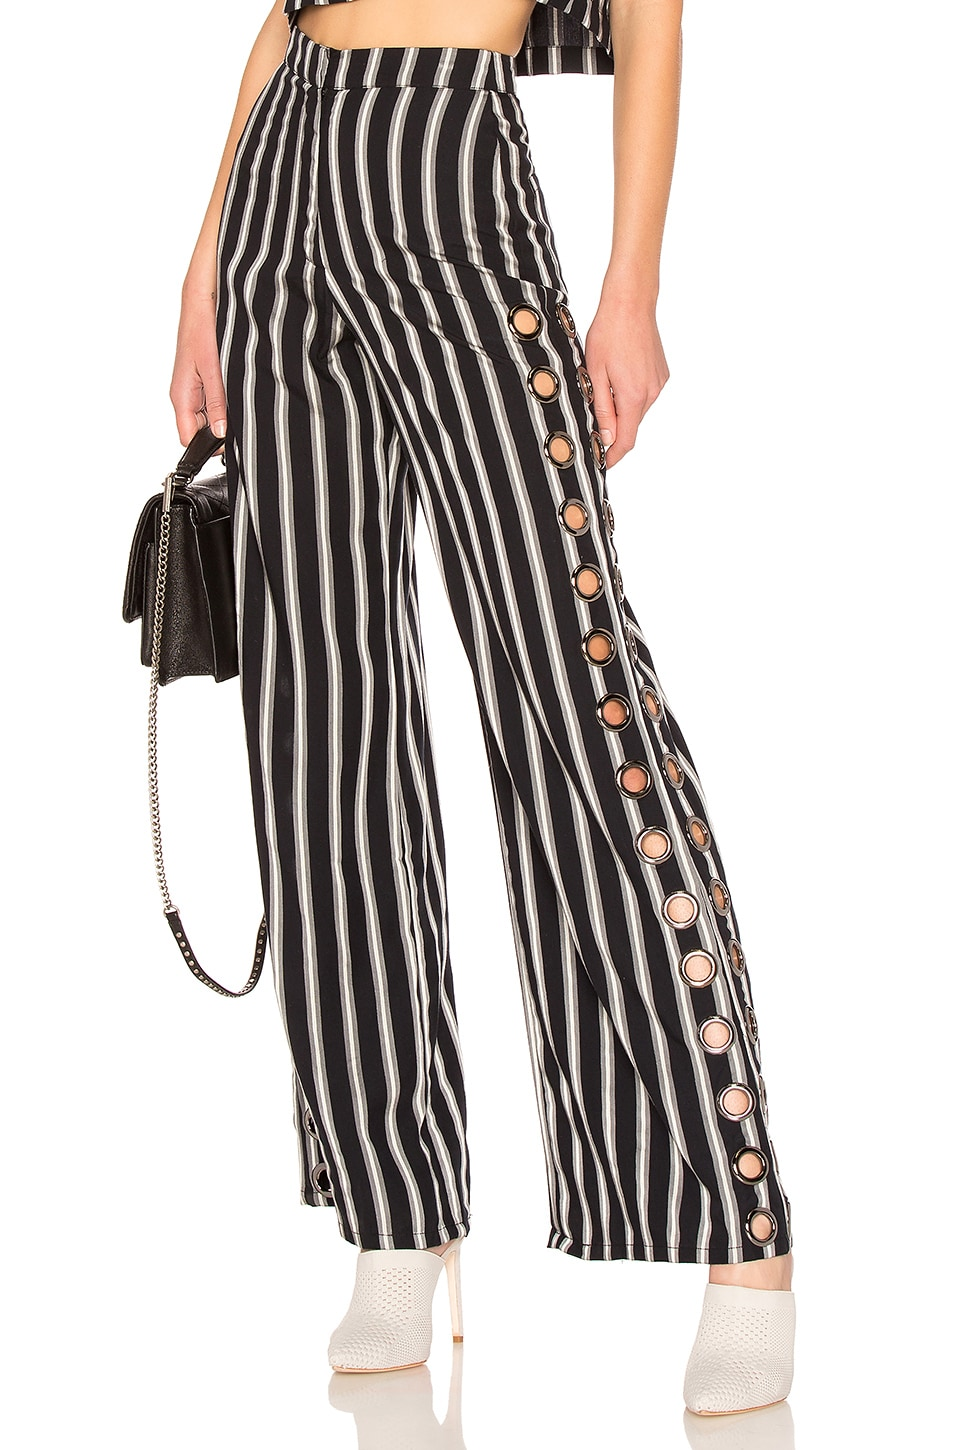 House of Harlow 1960 x REVOLVE Holden Pant in Deep